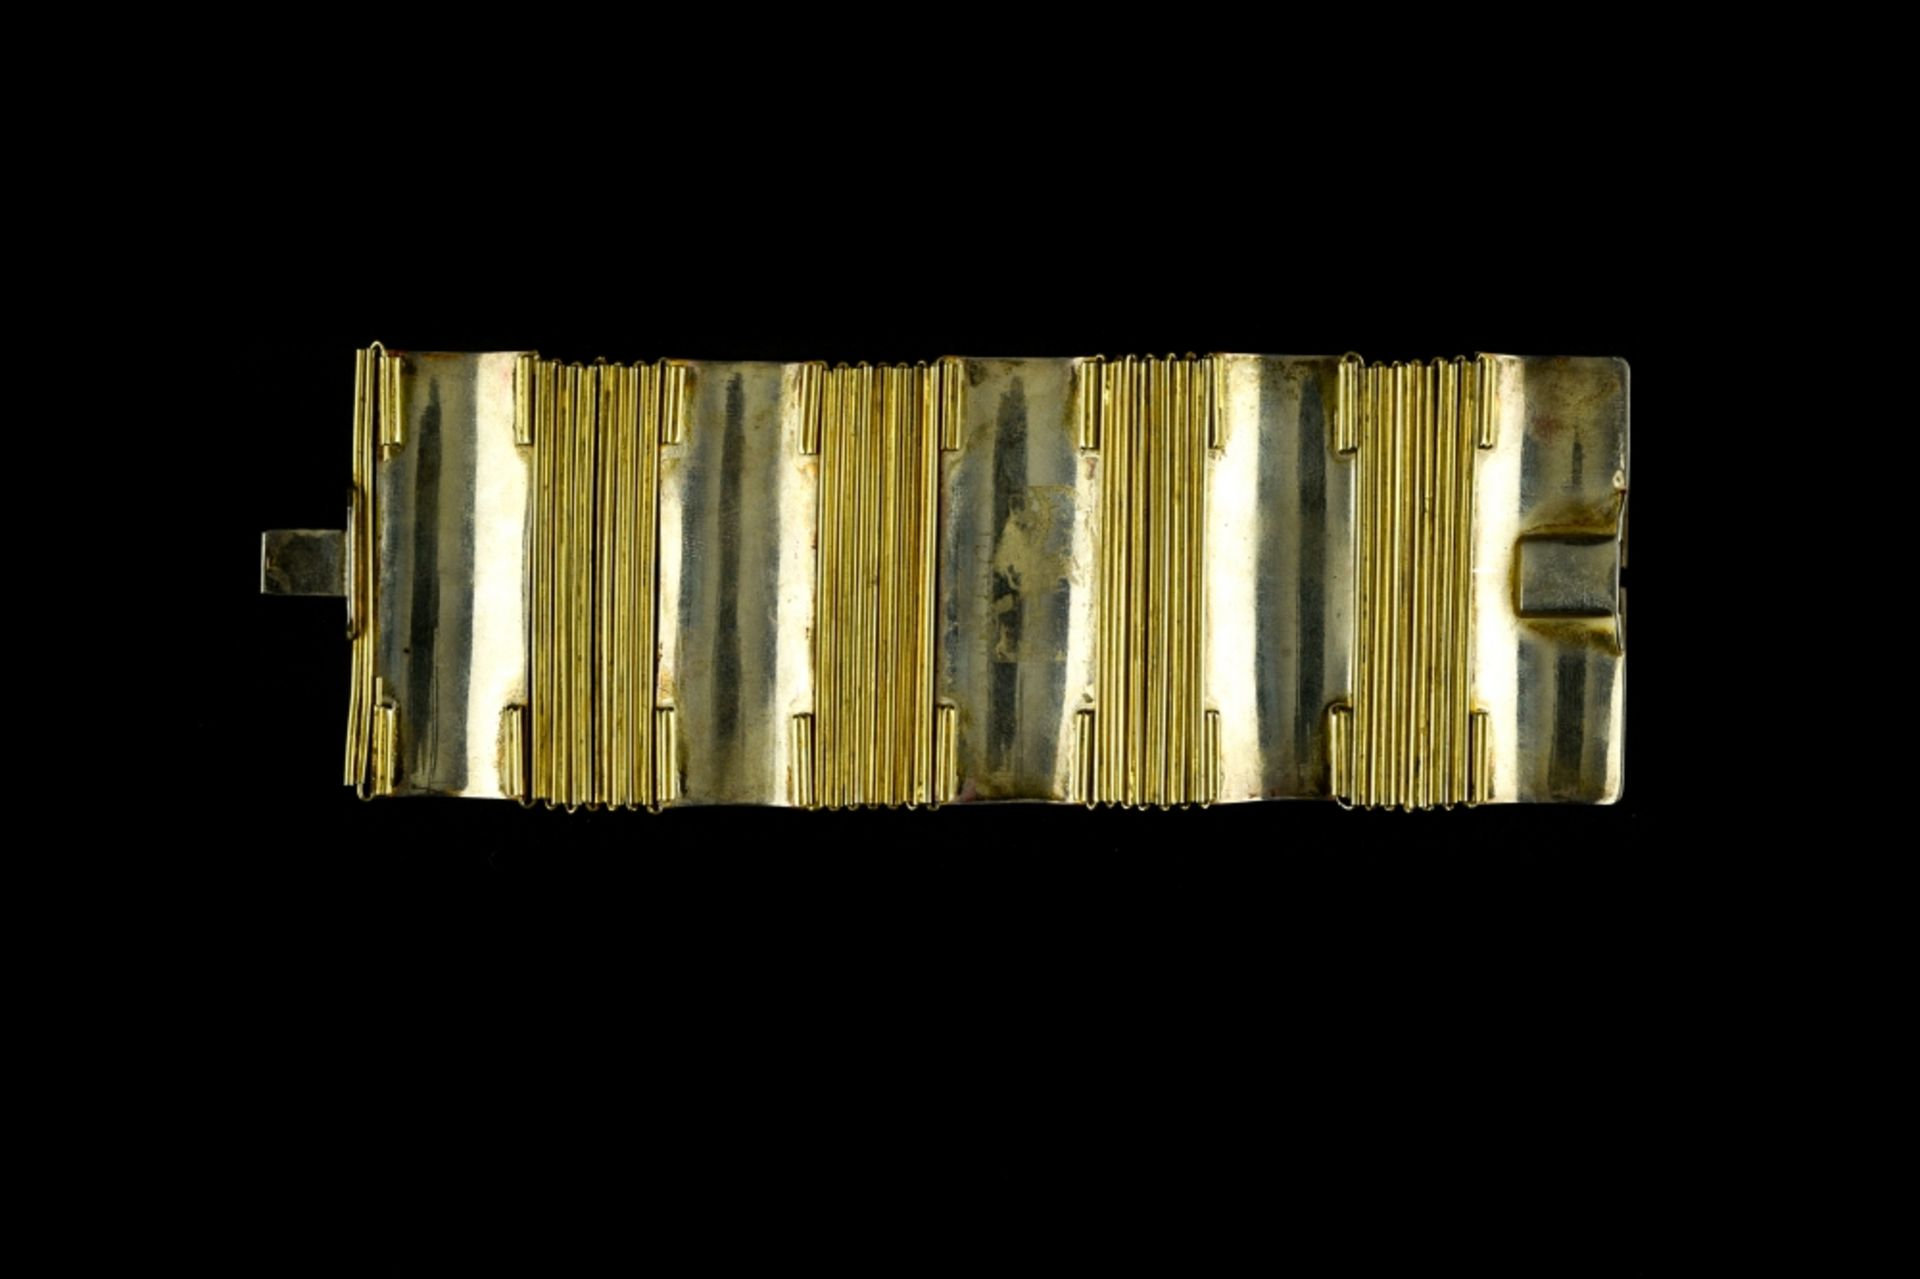 Jean DUNAND (1877 - 1942) Articulated bracelet, ca. 1922 Sterling silver, gilt metal, and red and - Image 3 of 3